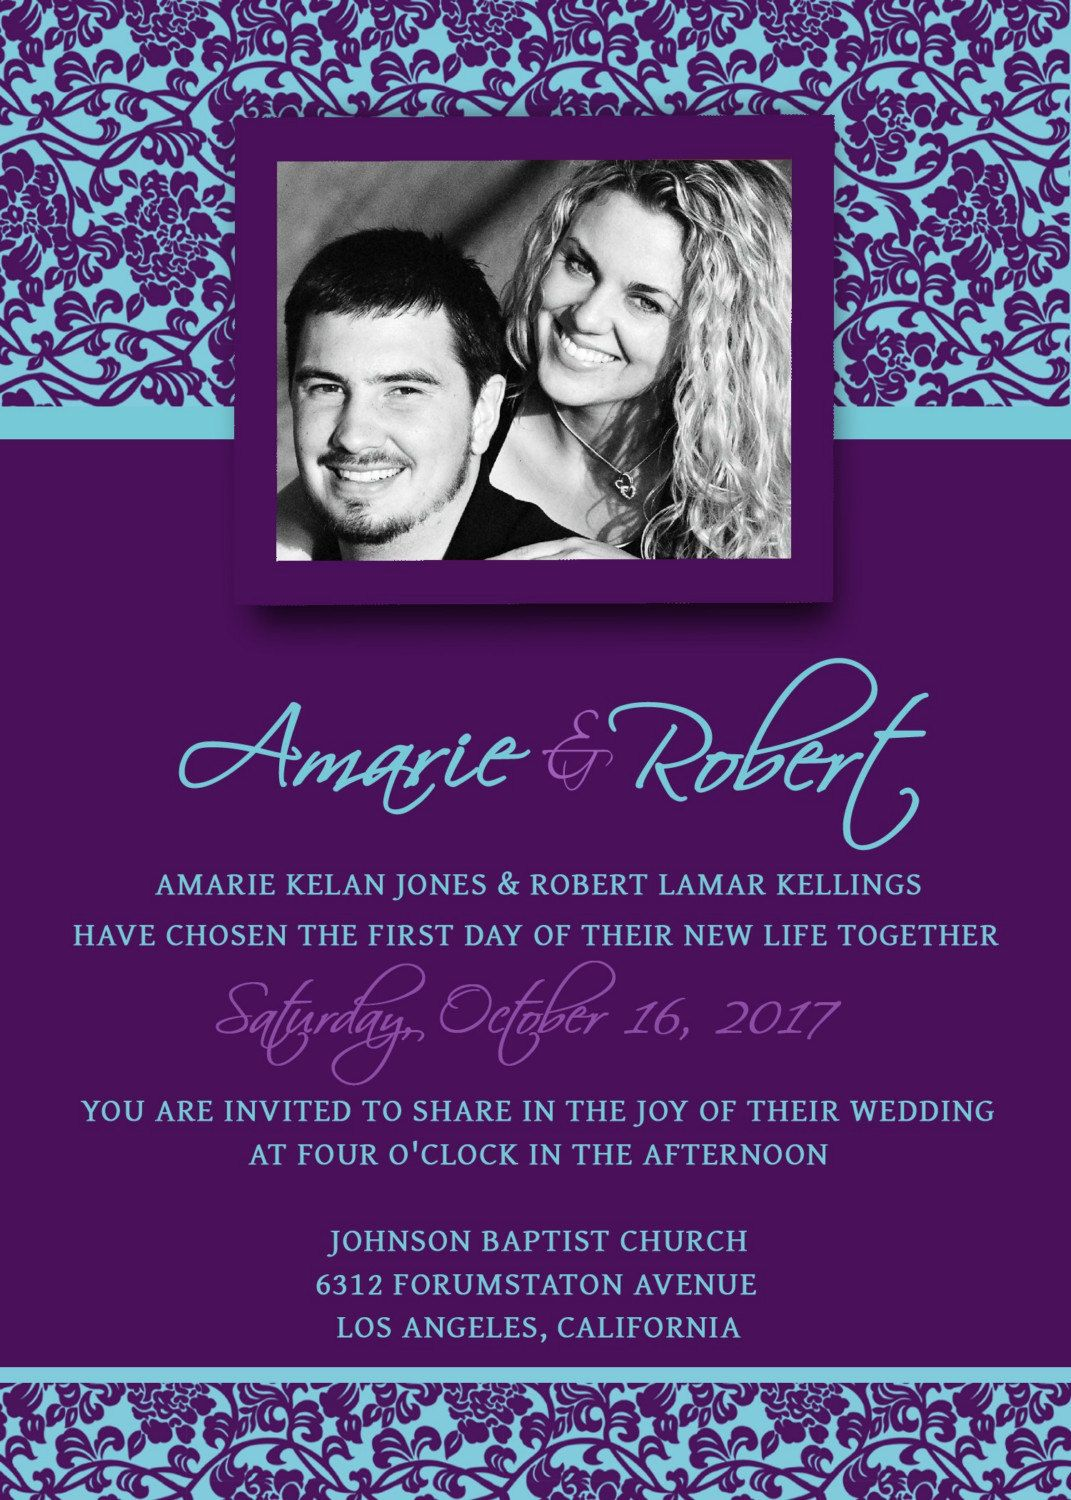 Printable Wedding Invitation Template Set PSD Photoshop - Viole